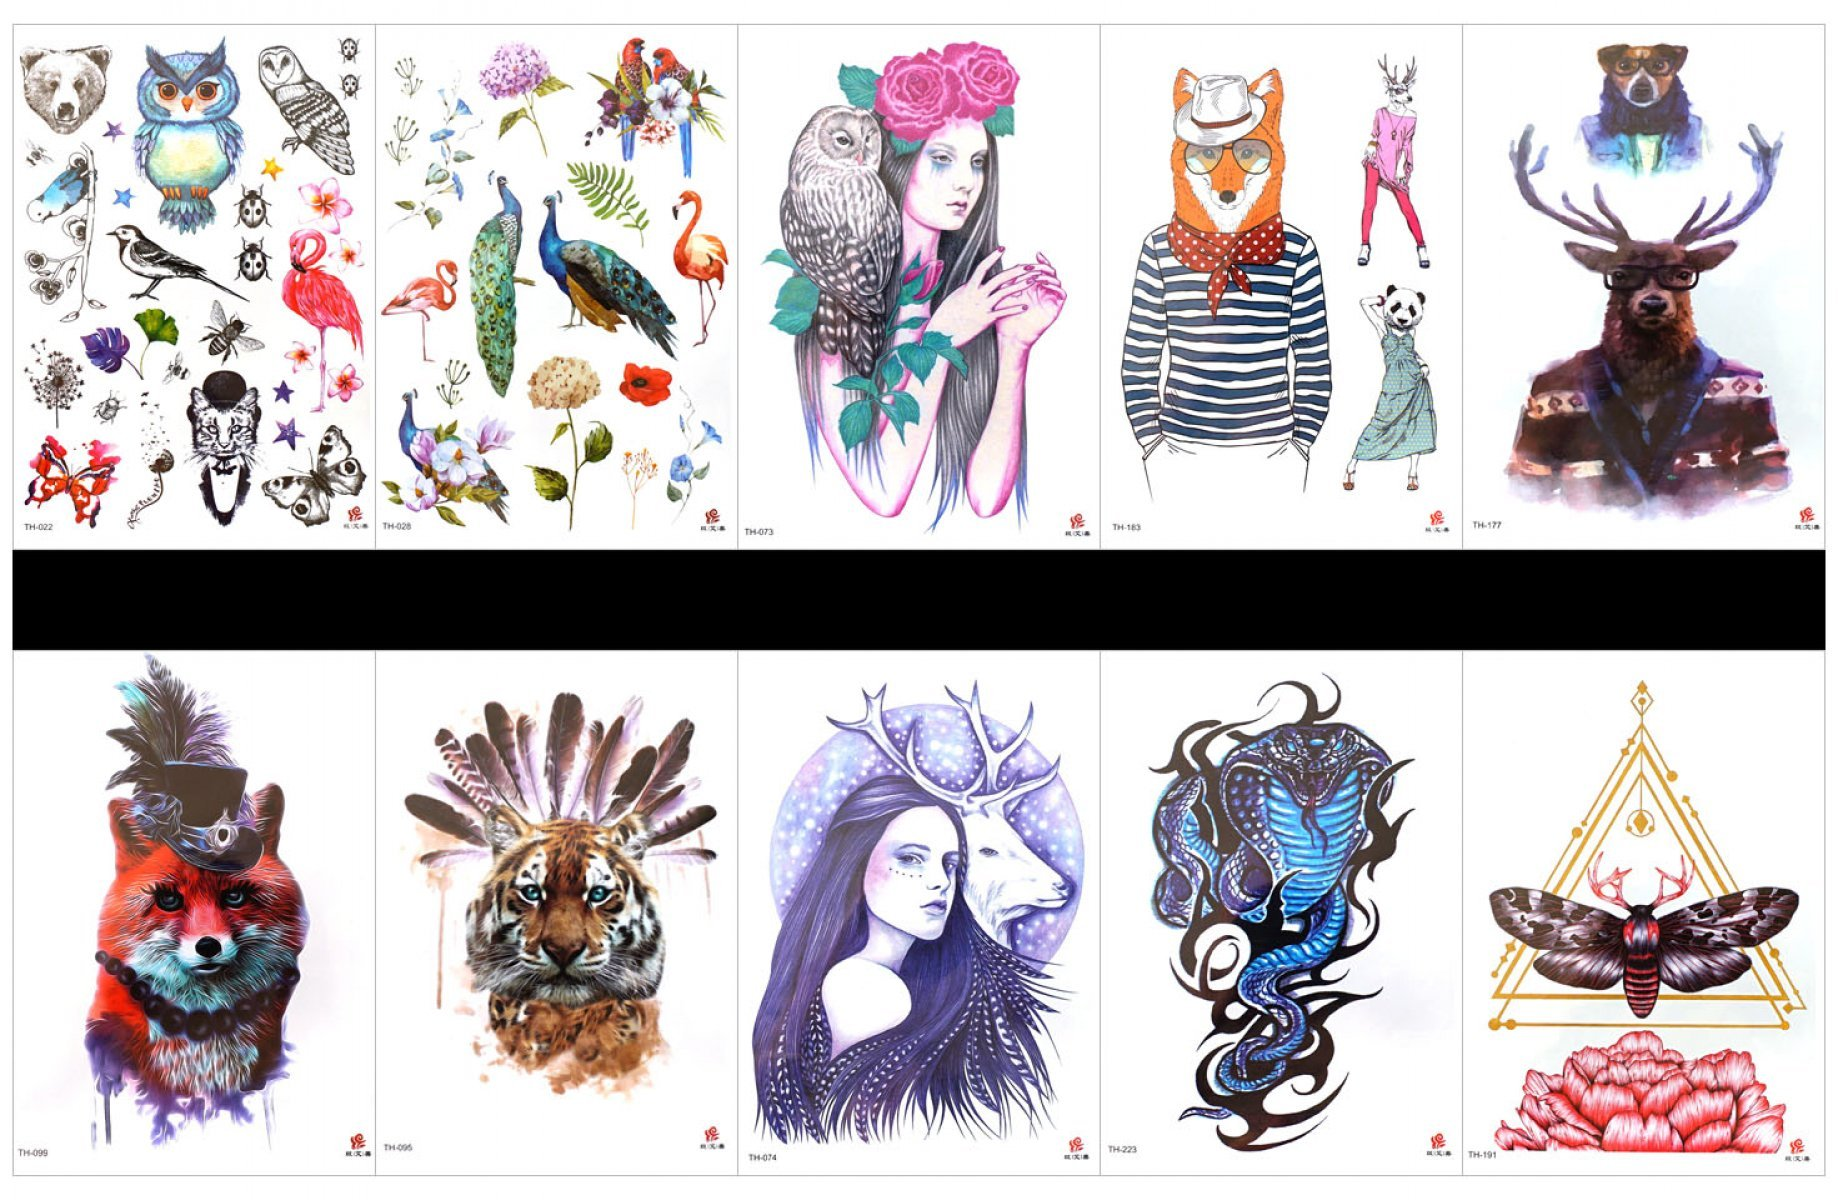 GGSELL GGSELL 10pcs tattoo snake temporary tattoos in one packages,including peacock,crane,bird,owl,lady,wolf,bear,deer,tiger,deer,cobra,snake,insect with flowers,etc.